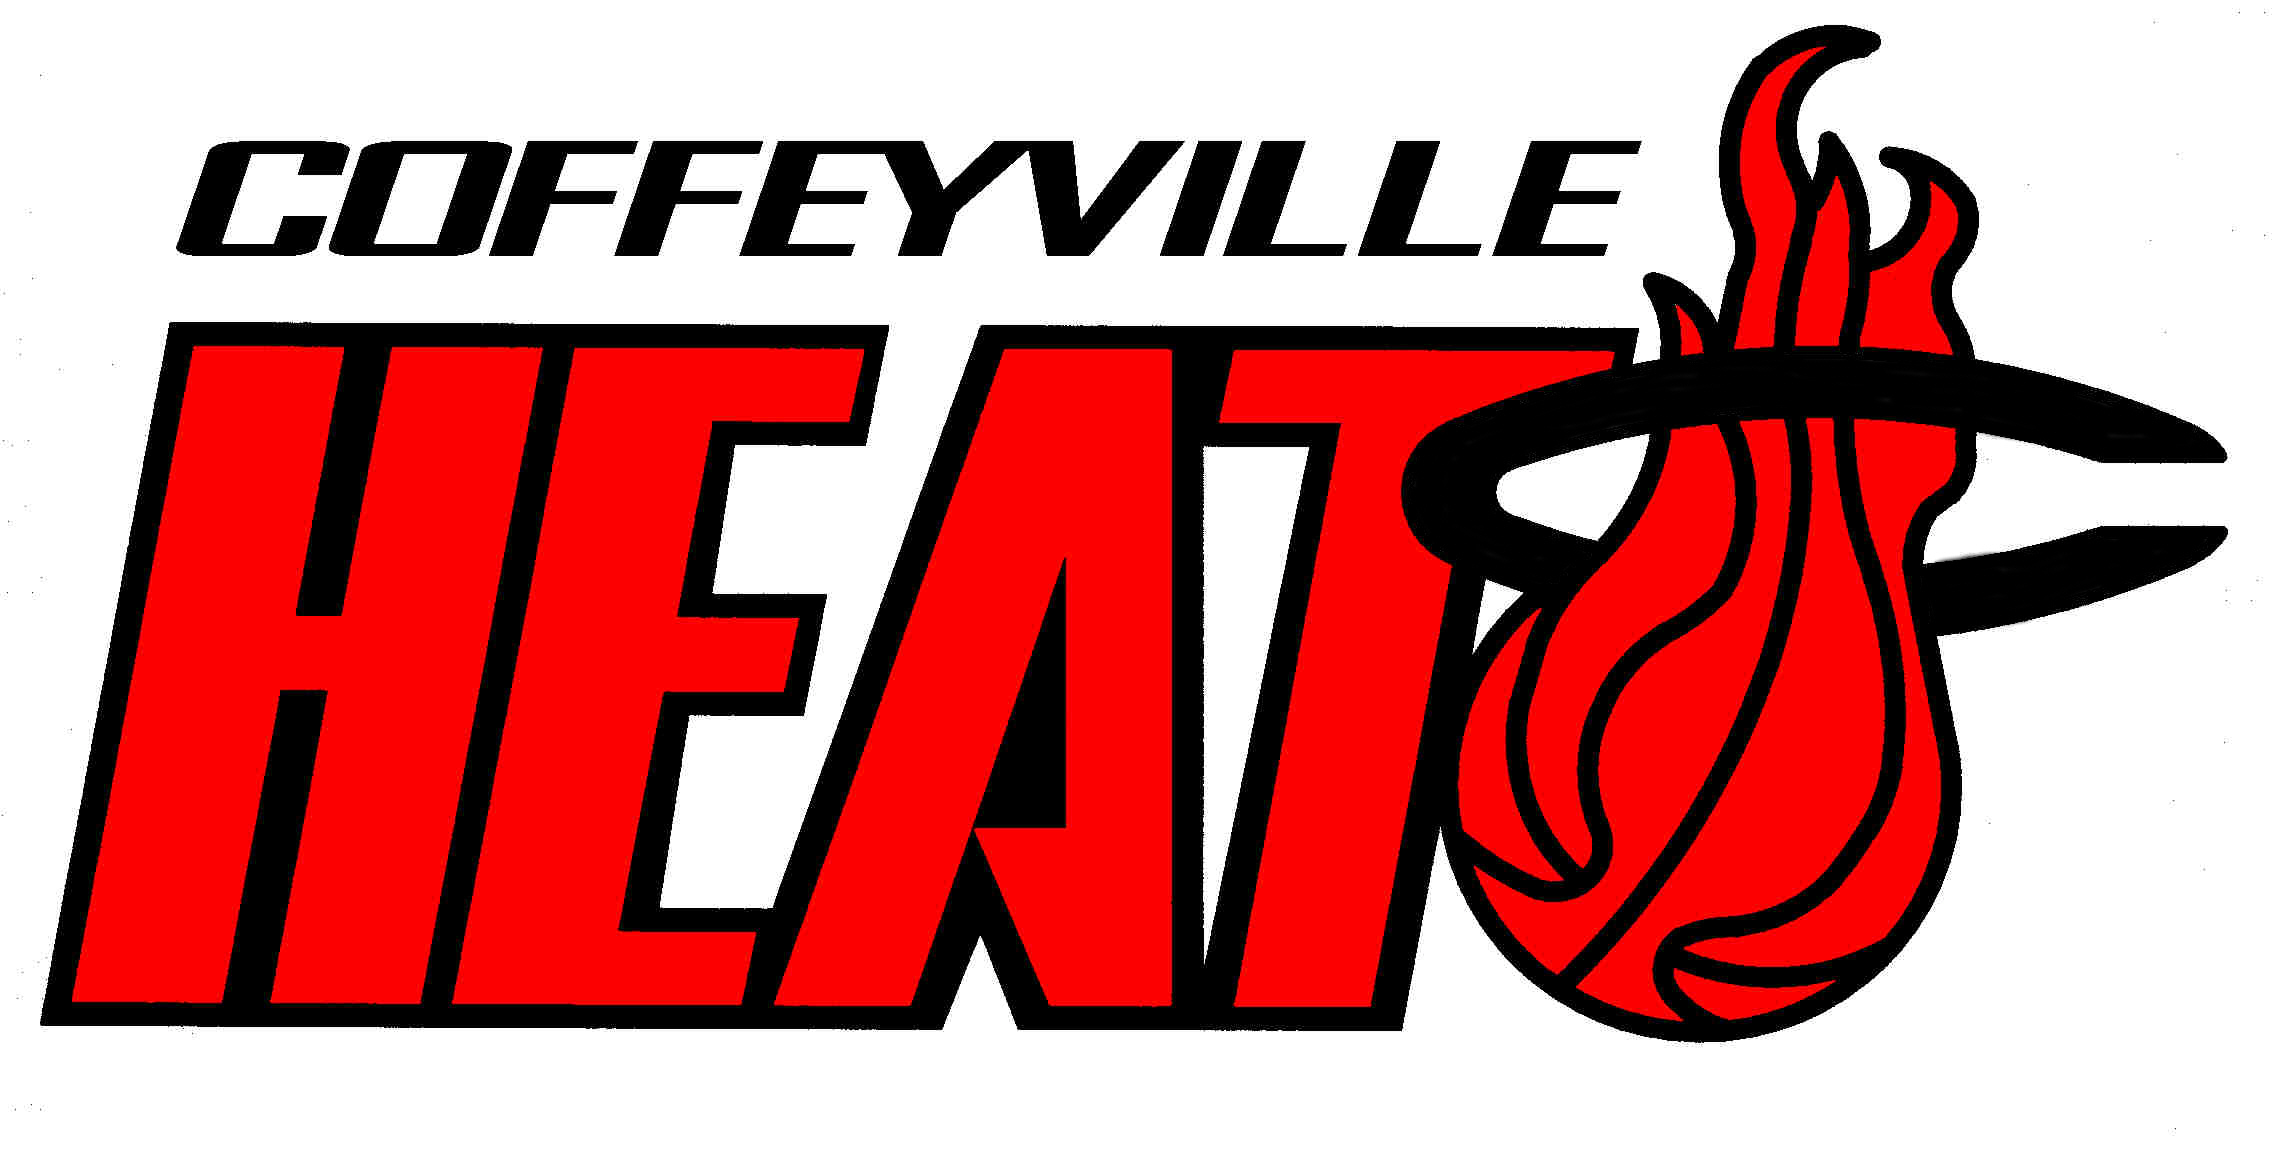 Coffeyville Heat Classic Tournament